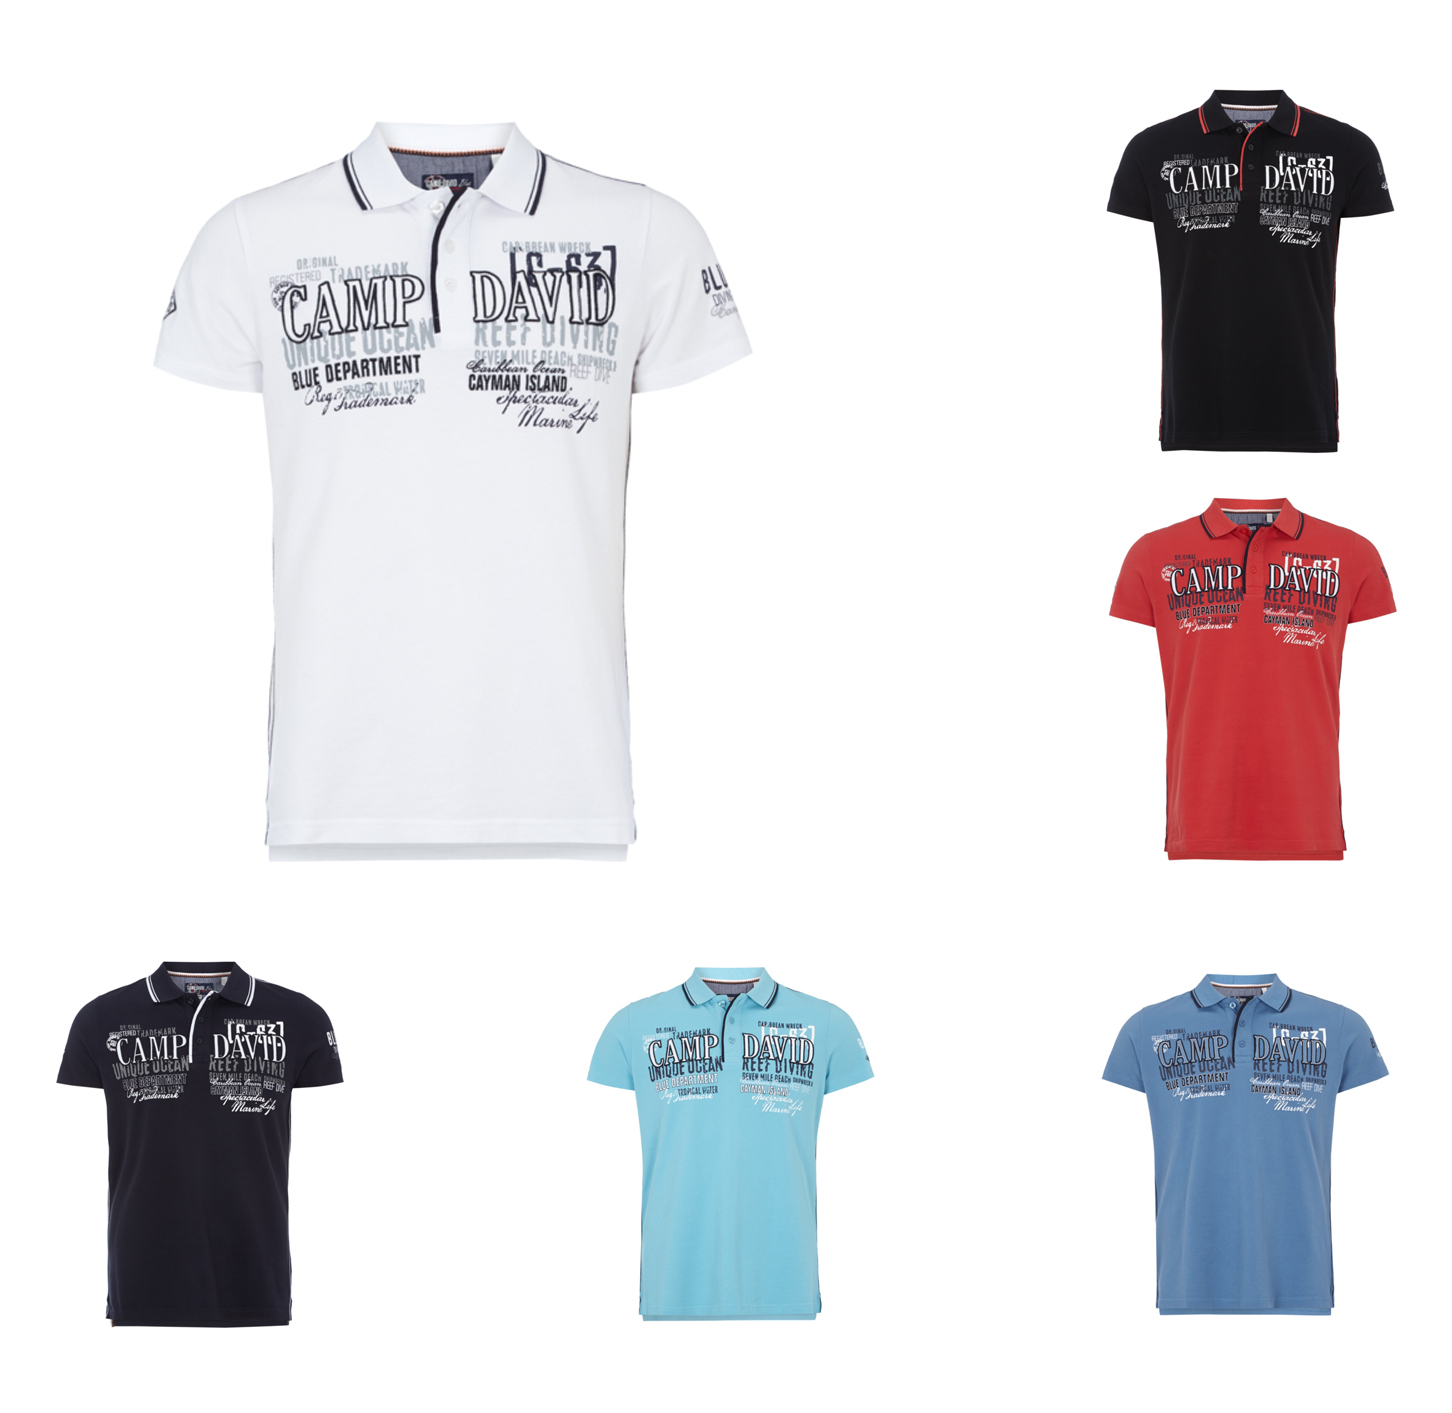 camp david poloshirt mit logo applikationen und prints herren neu ebay. Black Bedroom Furniture Sets. Home Design Ideas